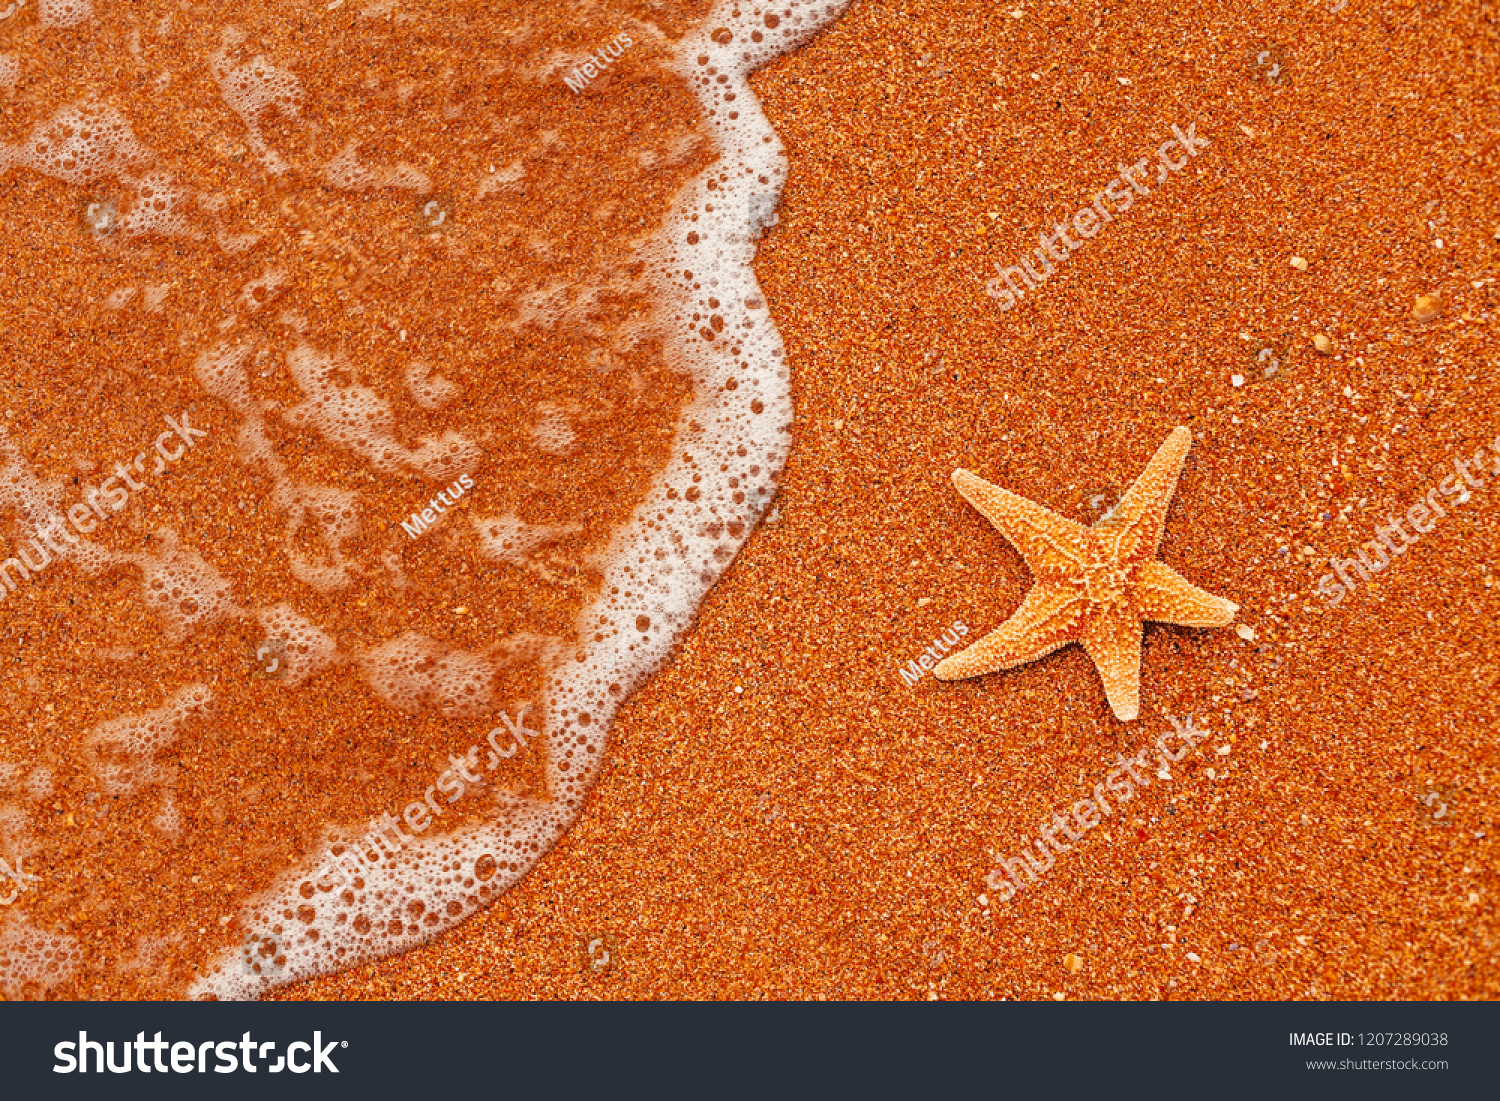 stock-photo-seastar-resting-on-coarse-sa